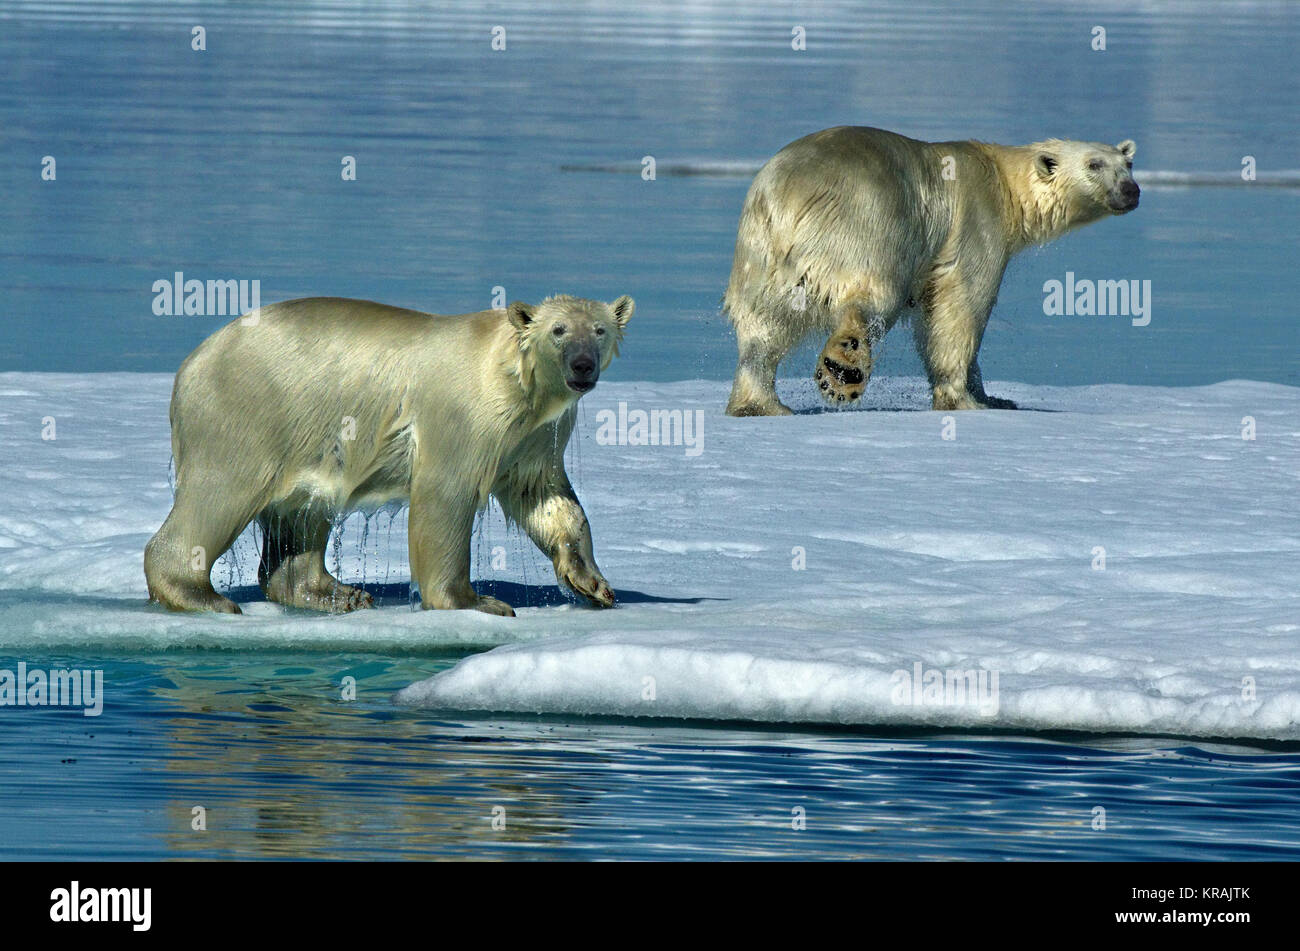 Two polar bears on Ice, Scoresby Sound, Greenland, summer 2017 - Stock Image